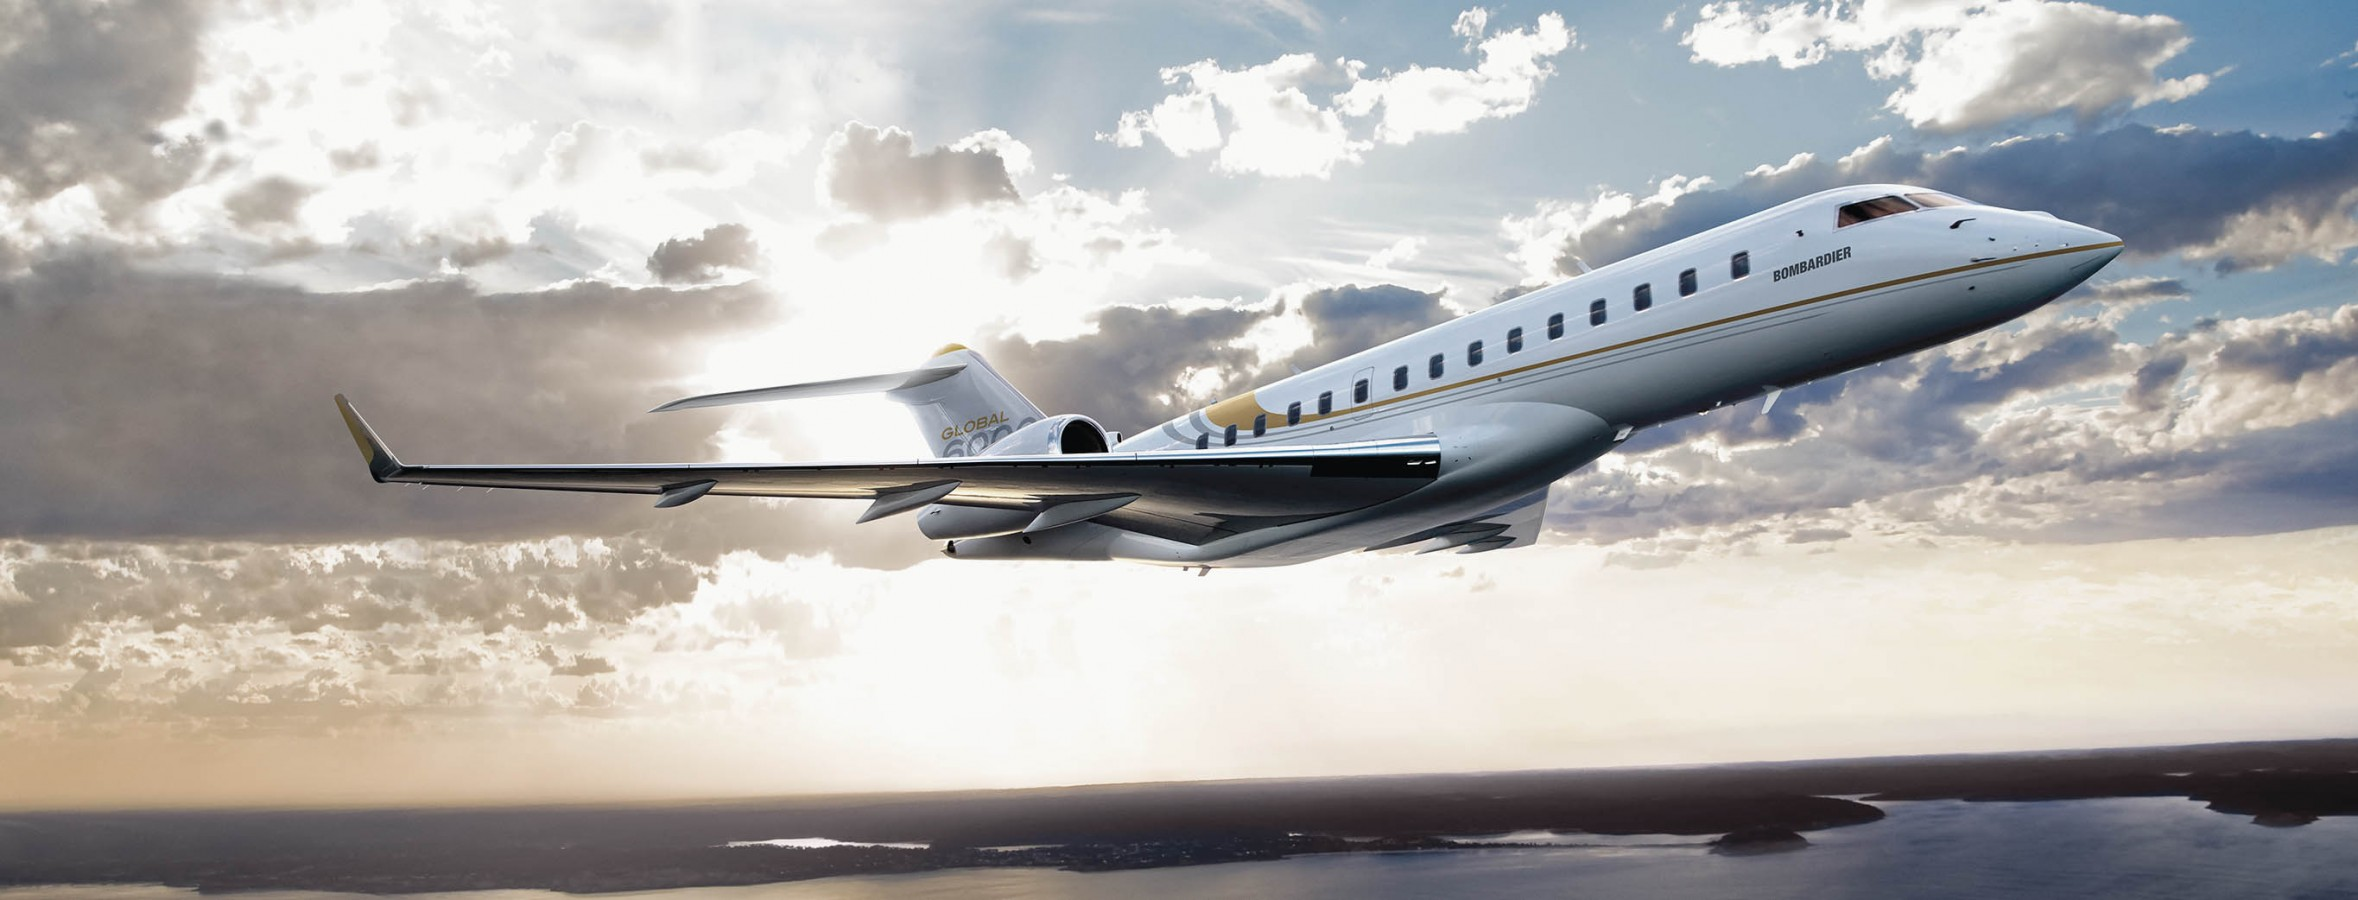 Bombardier private jet charter Bombardier business jet Bombardier corporate jet Bombardier charter21 - Bombardier private jet builder Bombardier private charter and Bombardier jet broker